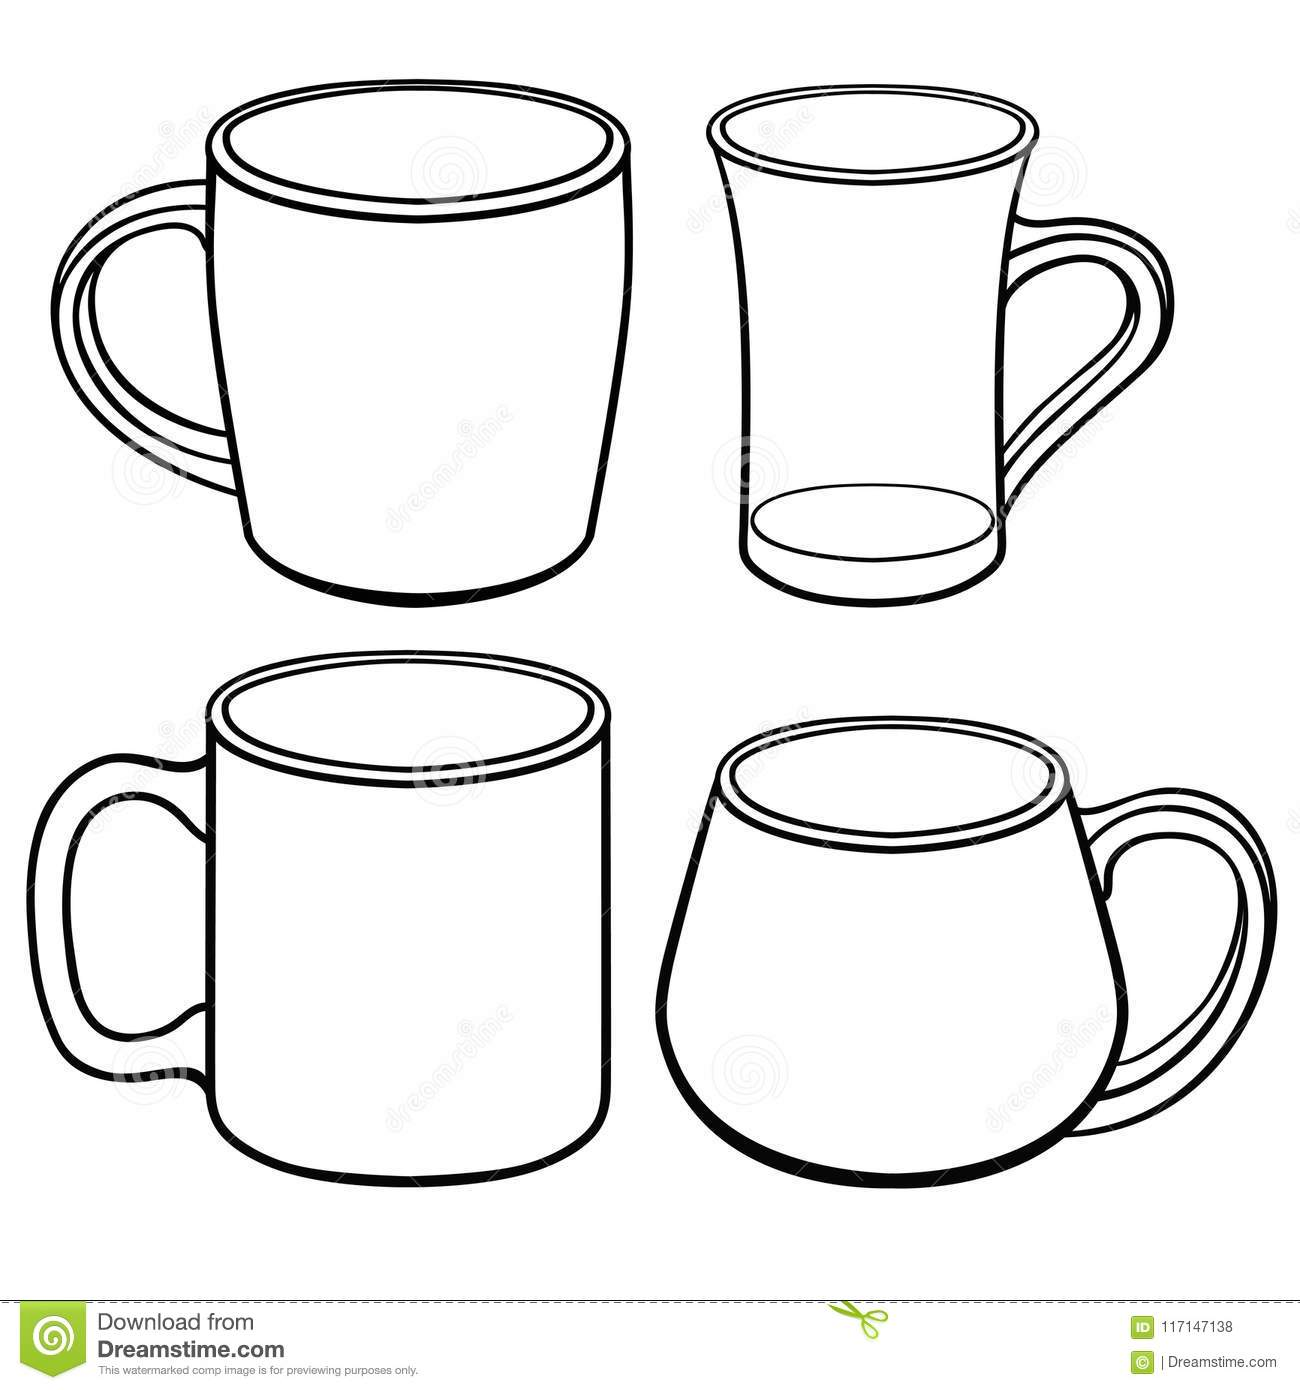 Cups And Mugs For Tea Of Different Shapes A Set Of Templates Line Drawing For Coloring Stock Vector Illustration Of Coloring Mugs 117147138